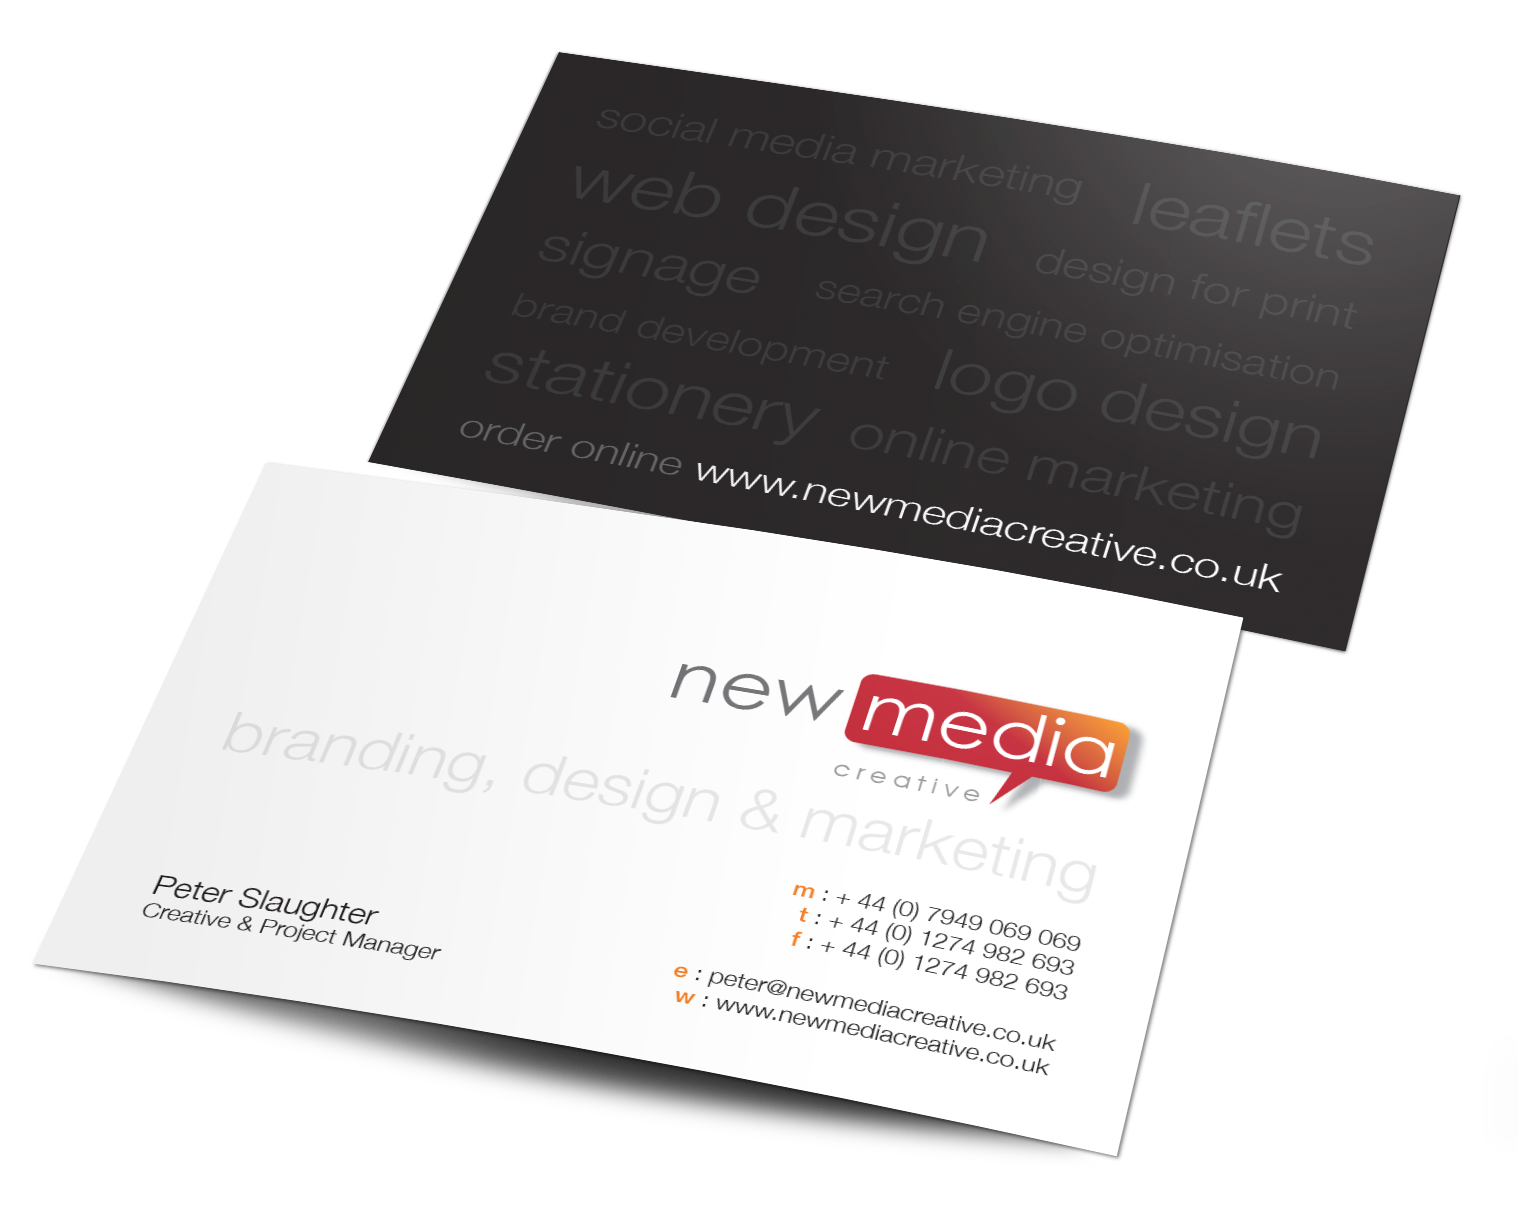 Social media free clipart banner black and white library Business card examples with social media clipart images ... banner black and white library